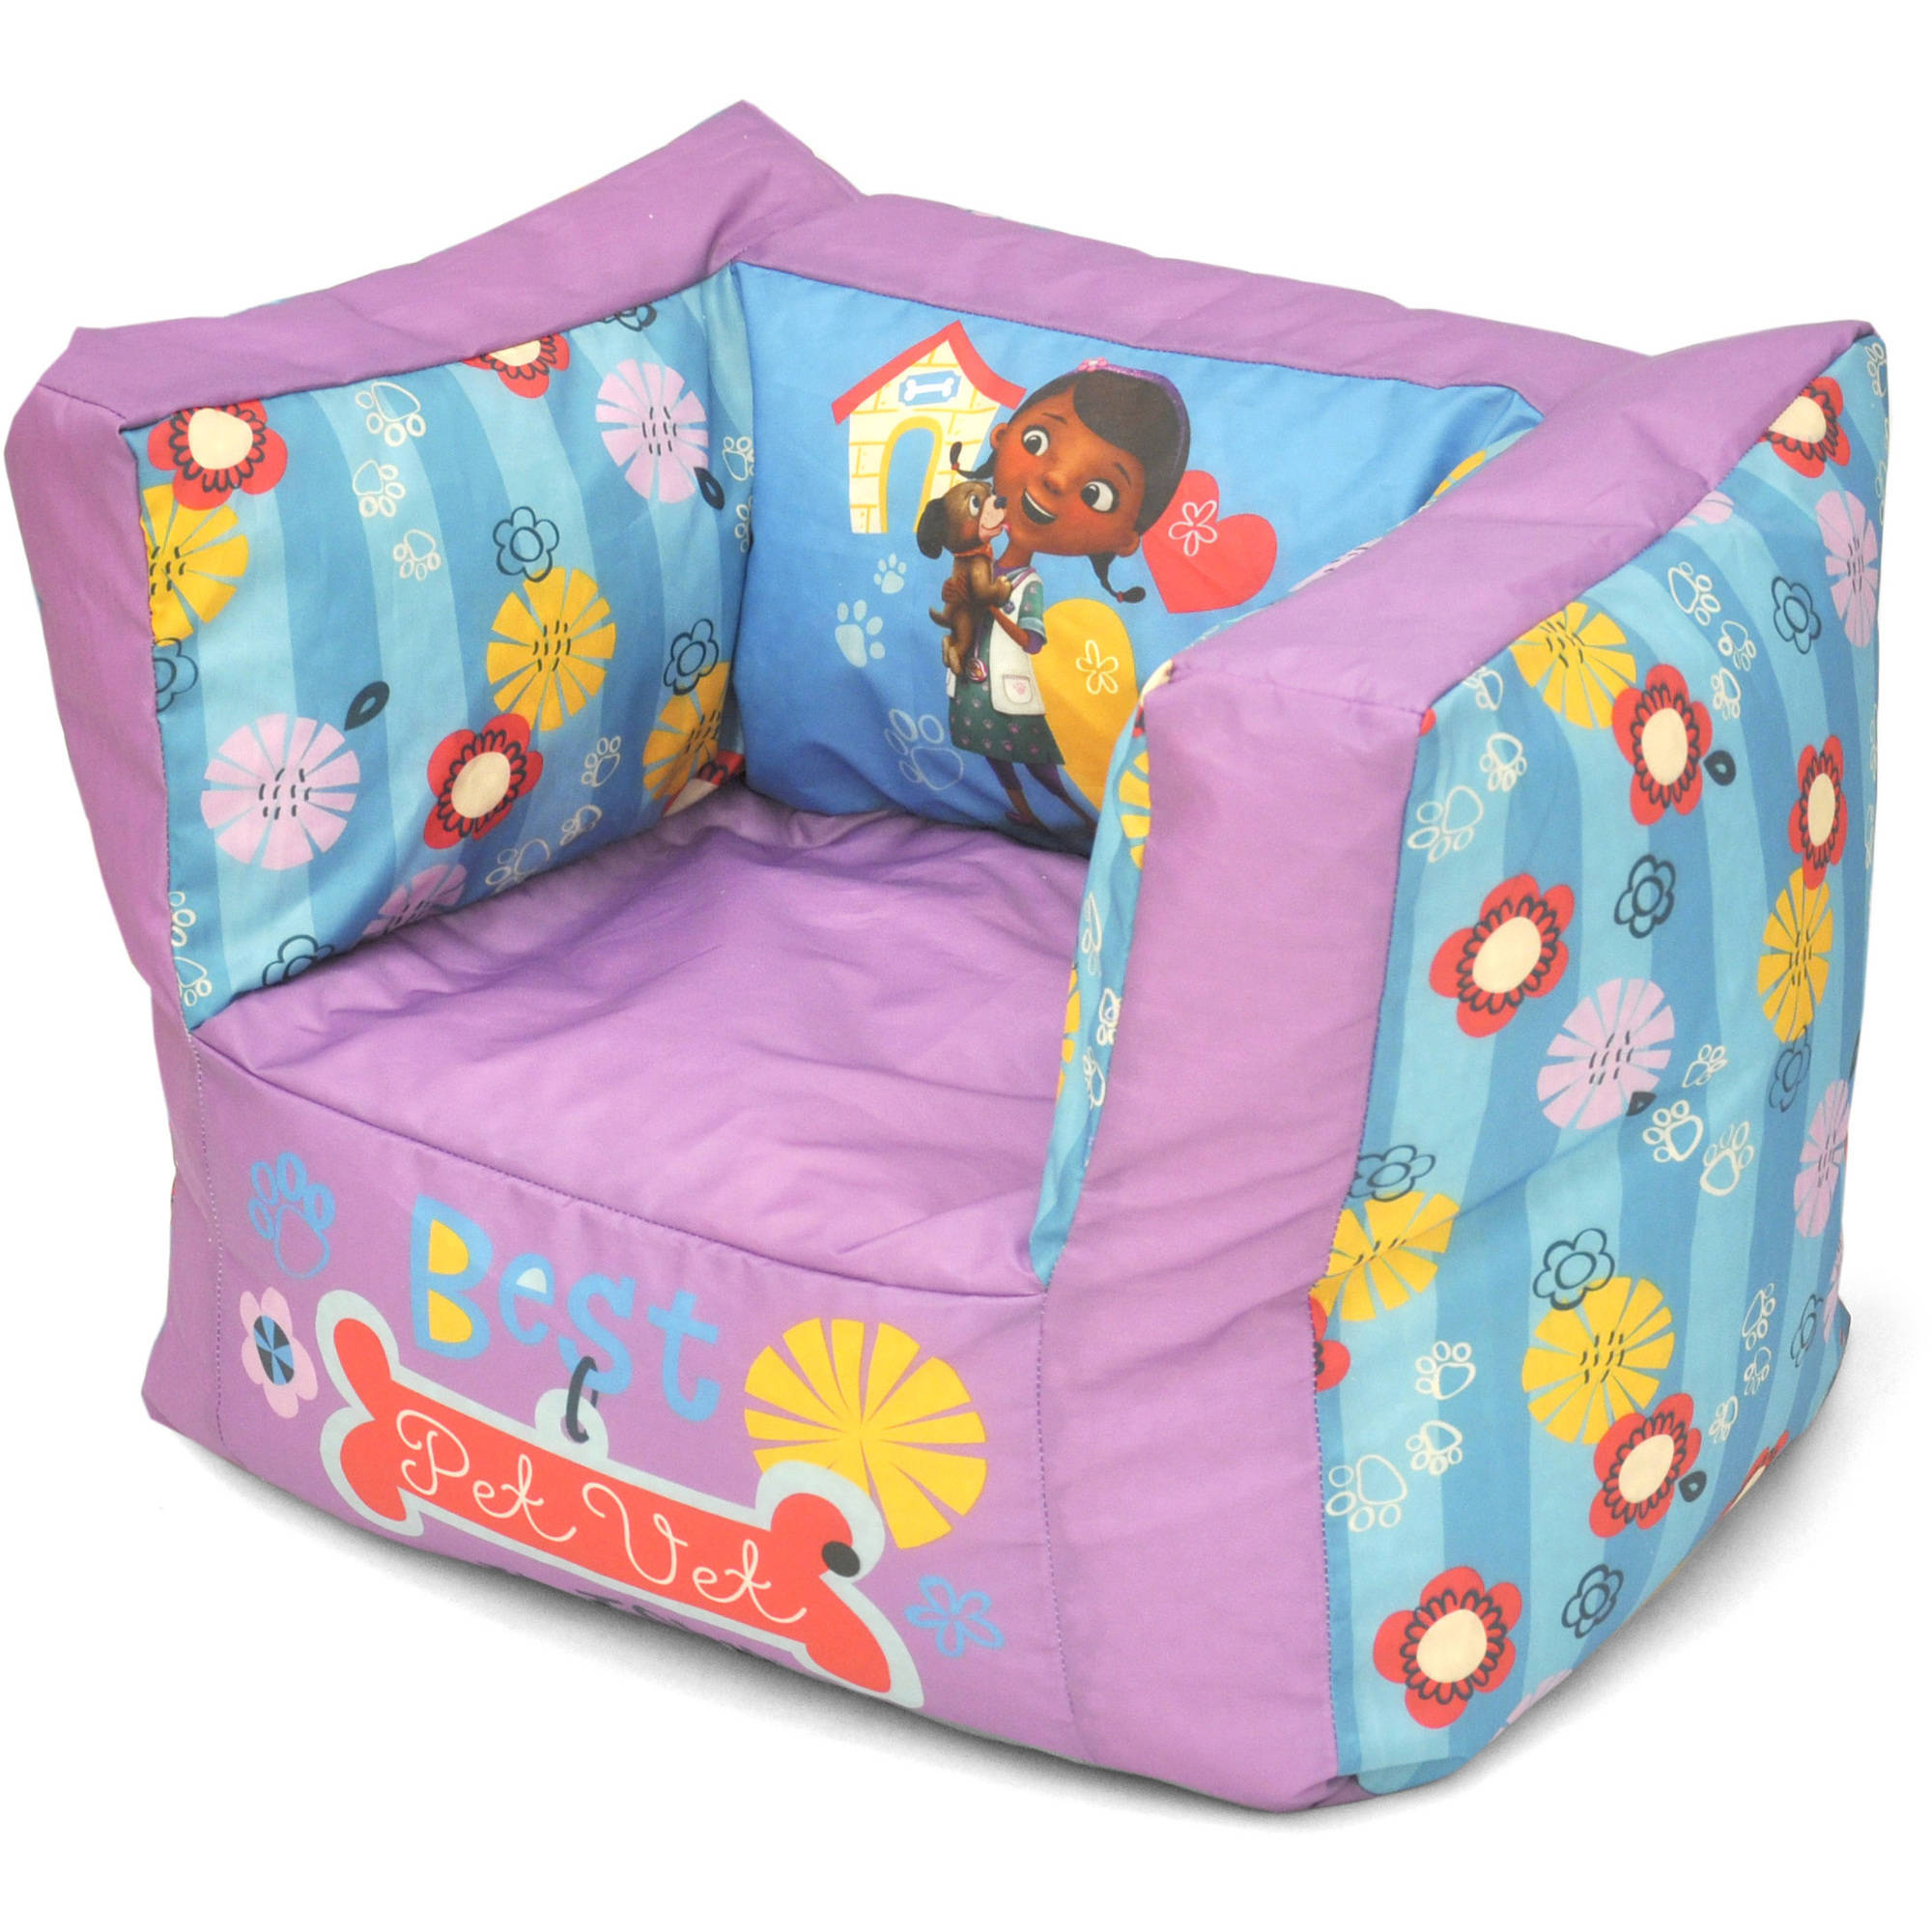 NEW! Doc McStuffins Square Bean Bag Chair (FREE 2 DAY ...